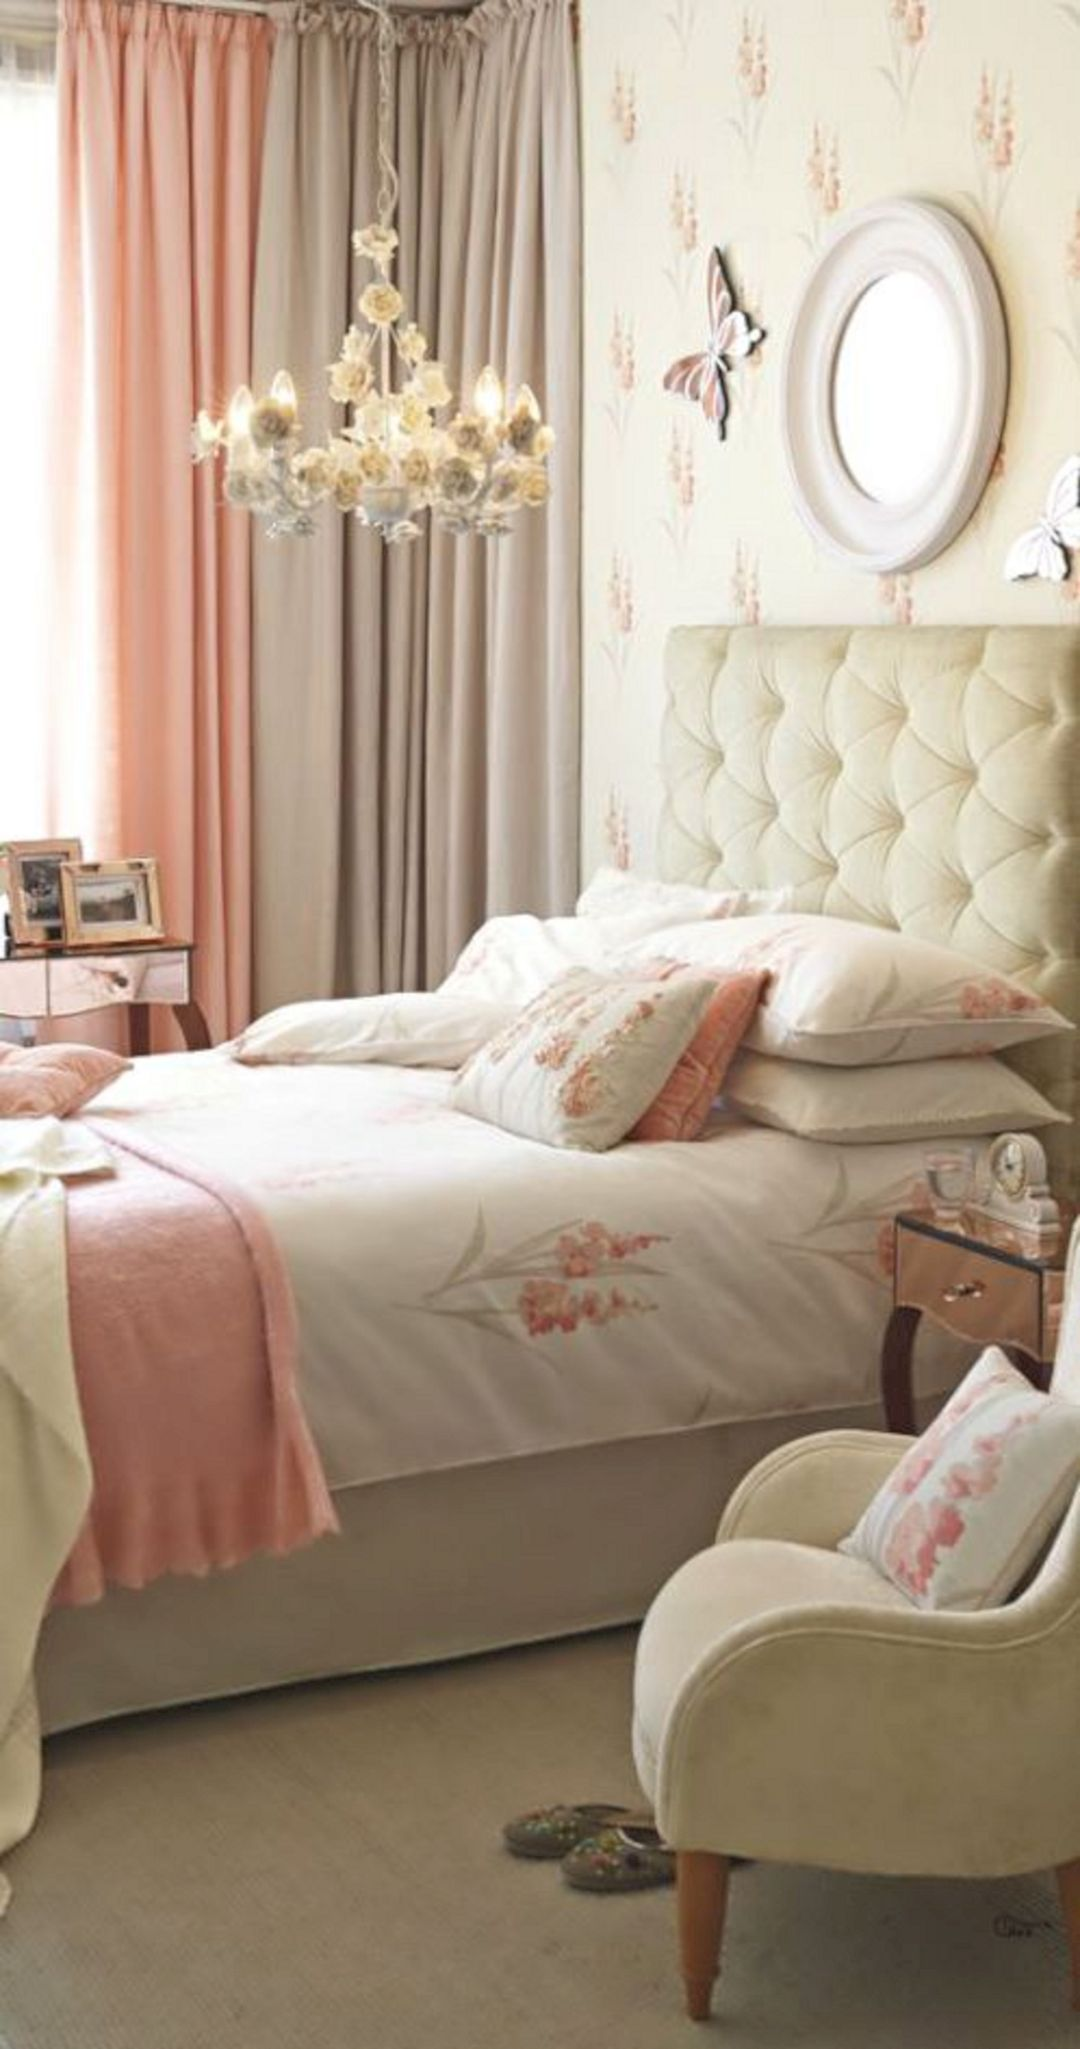 33 awesome white and pastel bedroom design ideas to sleep on better quality sleep with better bedroom decorations id=80331